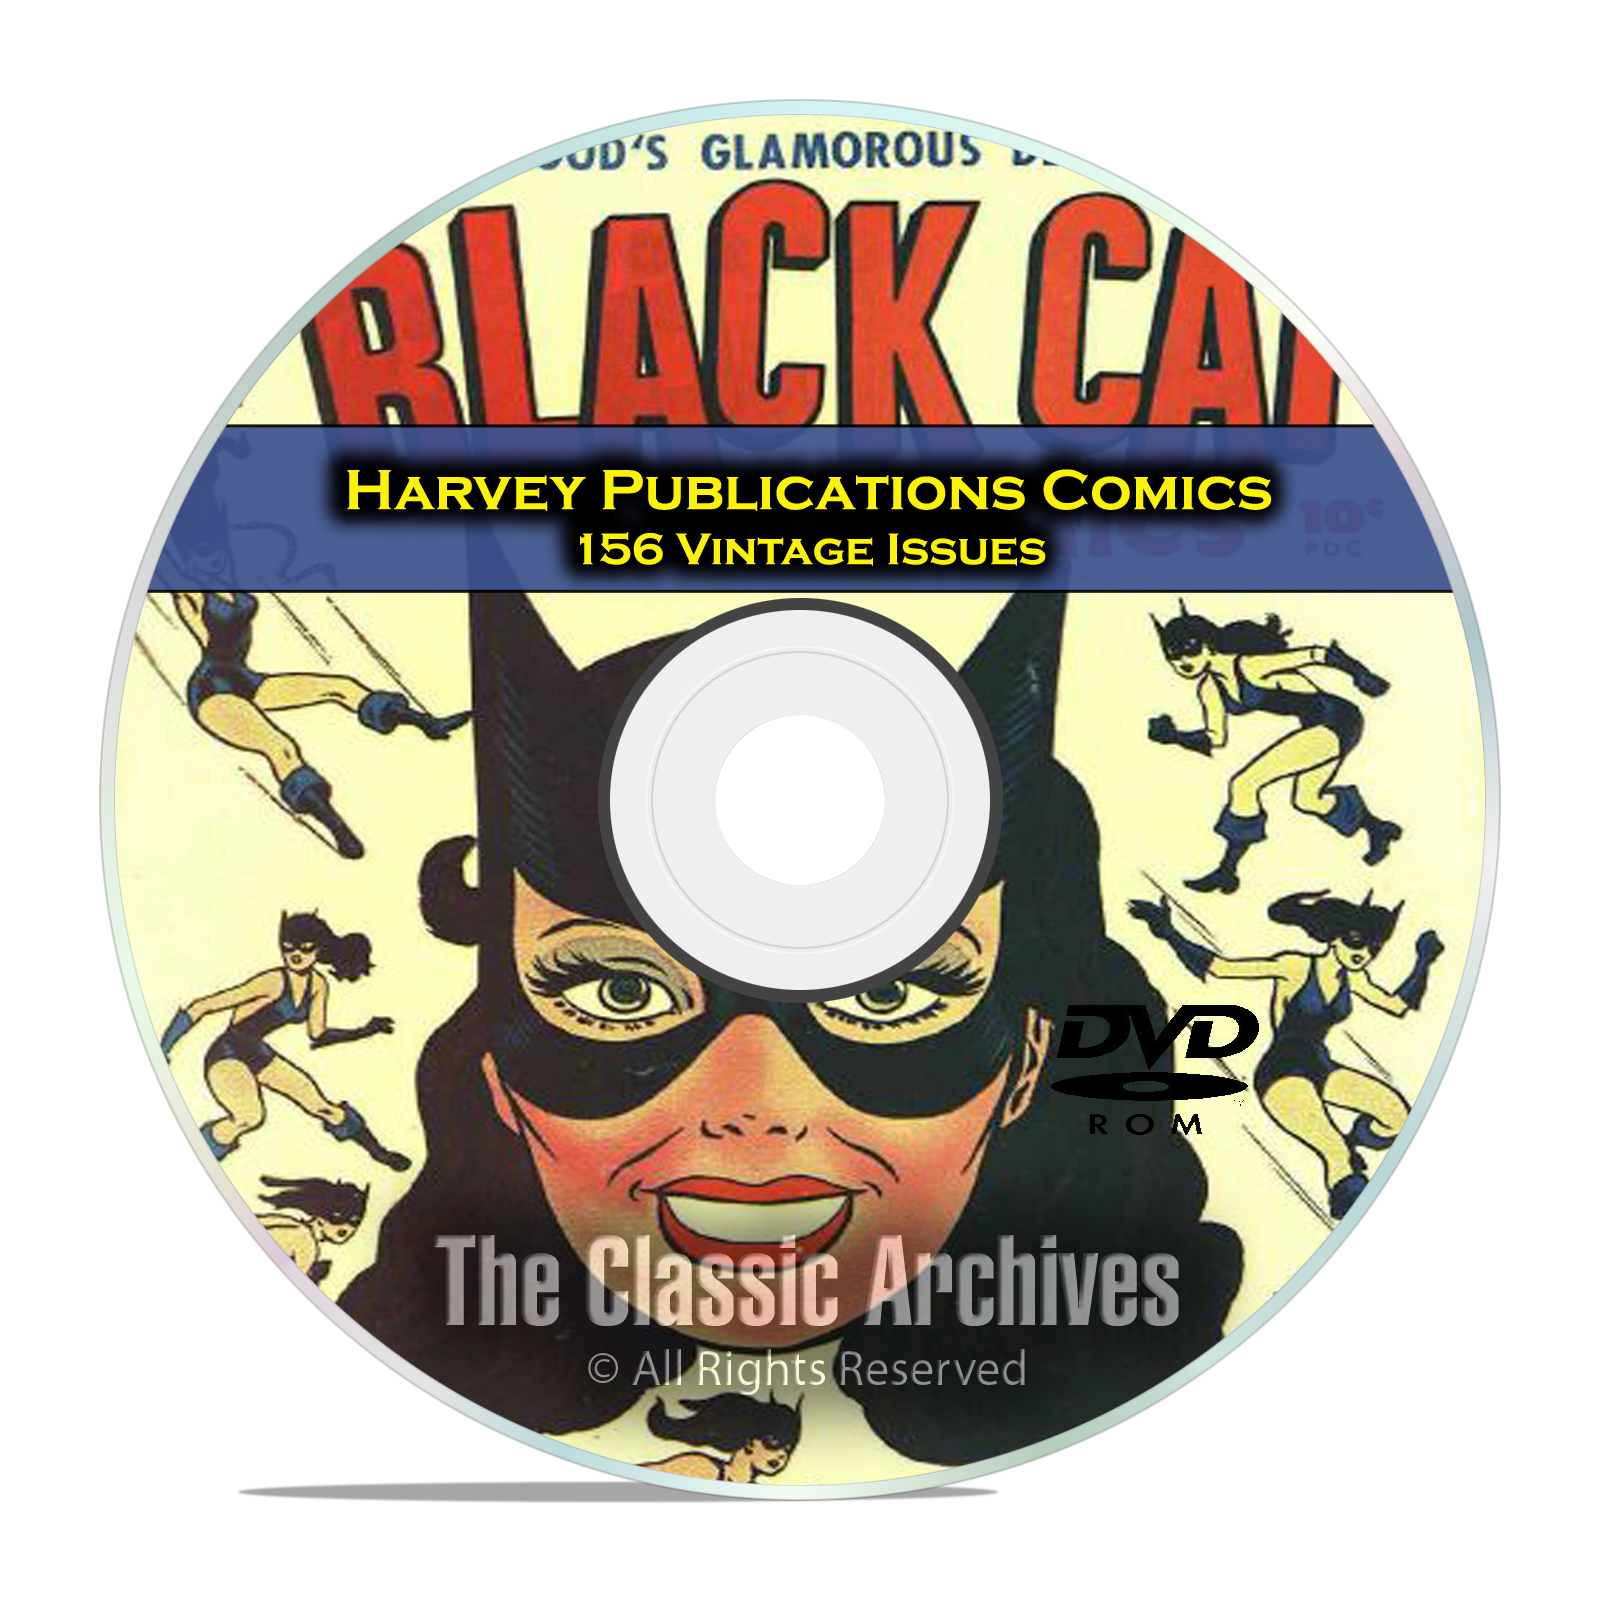 Harvey Publications Comics 156 Issues, Black Cat, Golden Age Comics PDF DVD